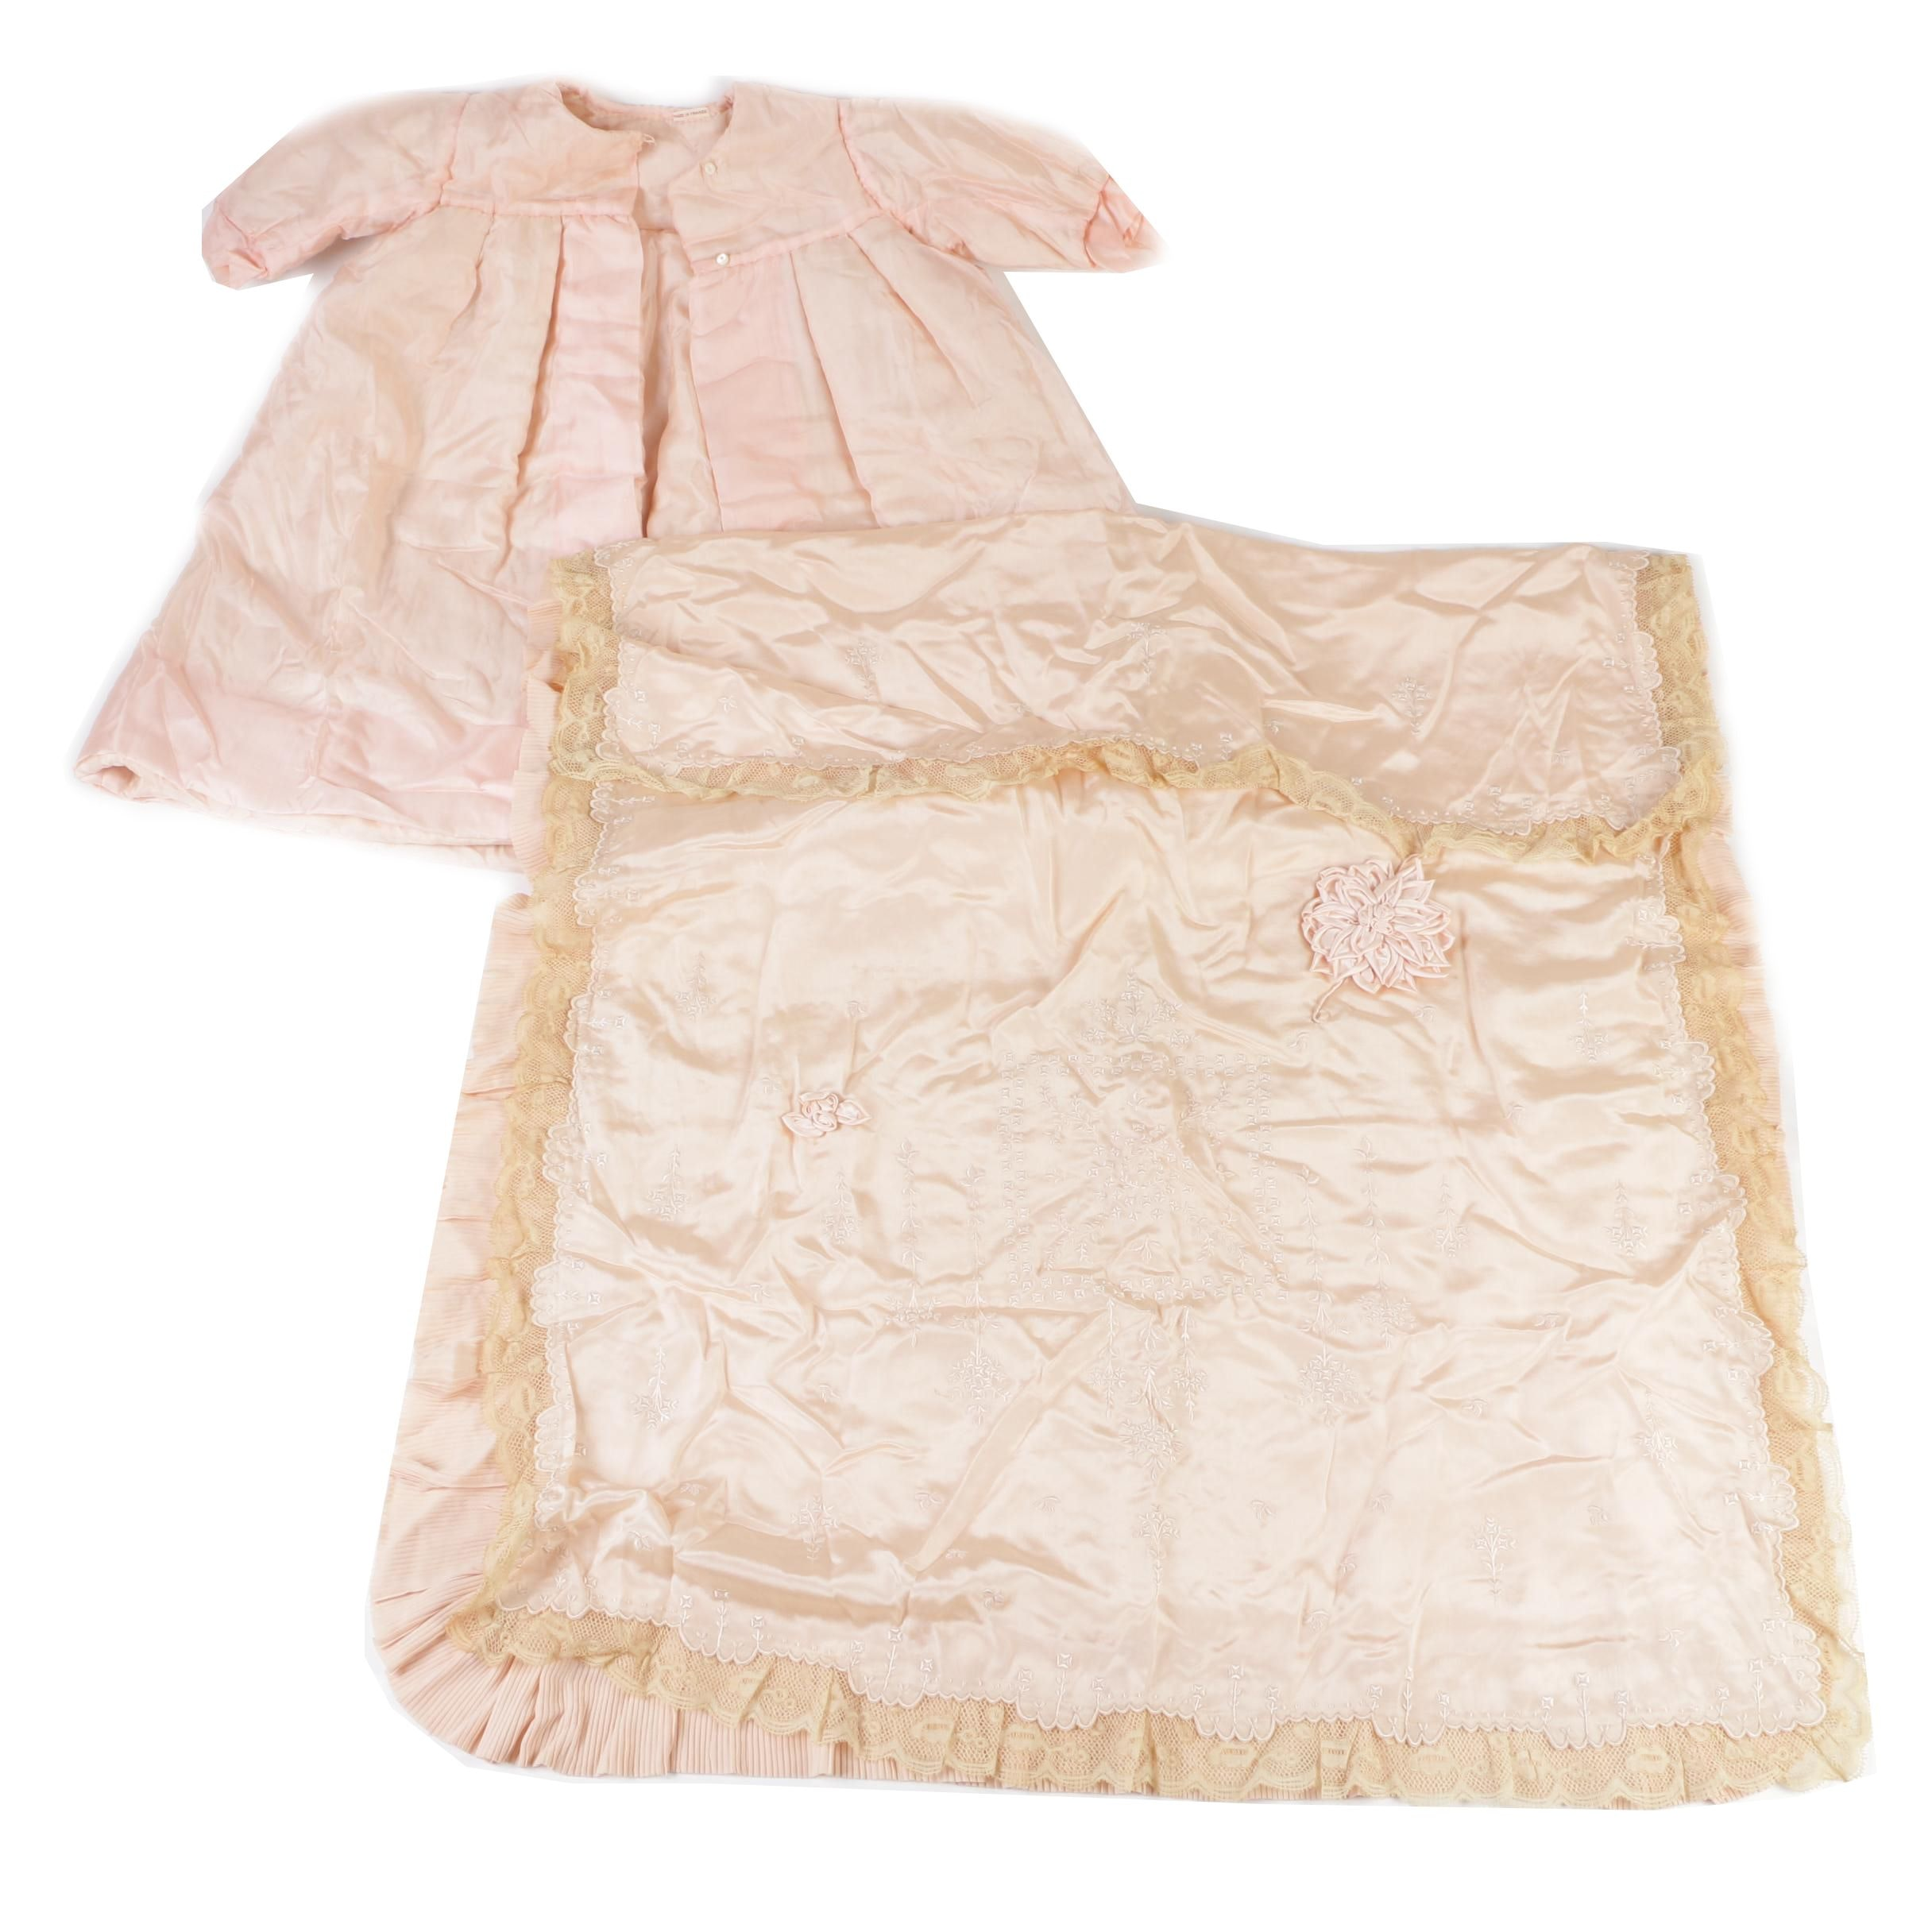 Infant Pink Silk Pram Coat and Blanket, Made in France, circa 1920